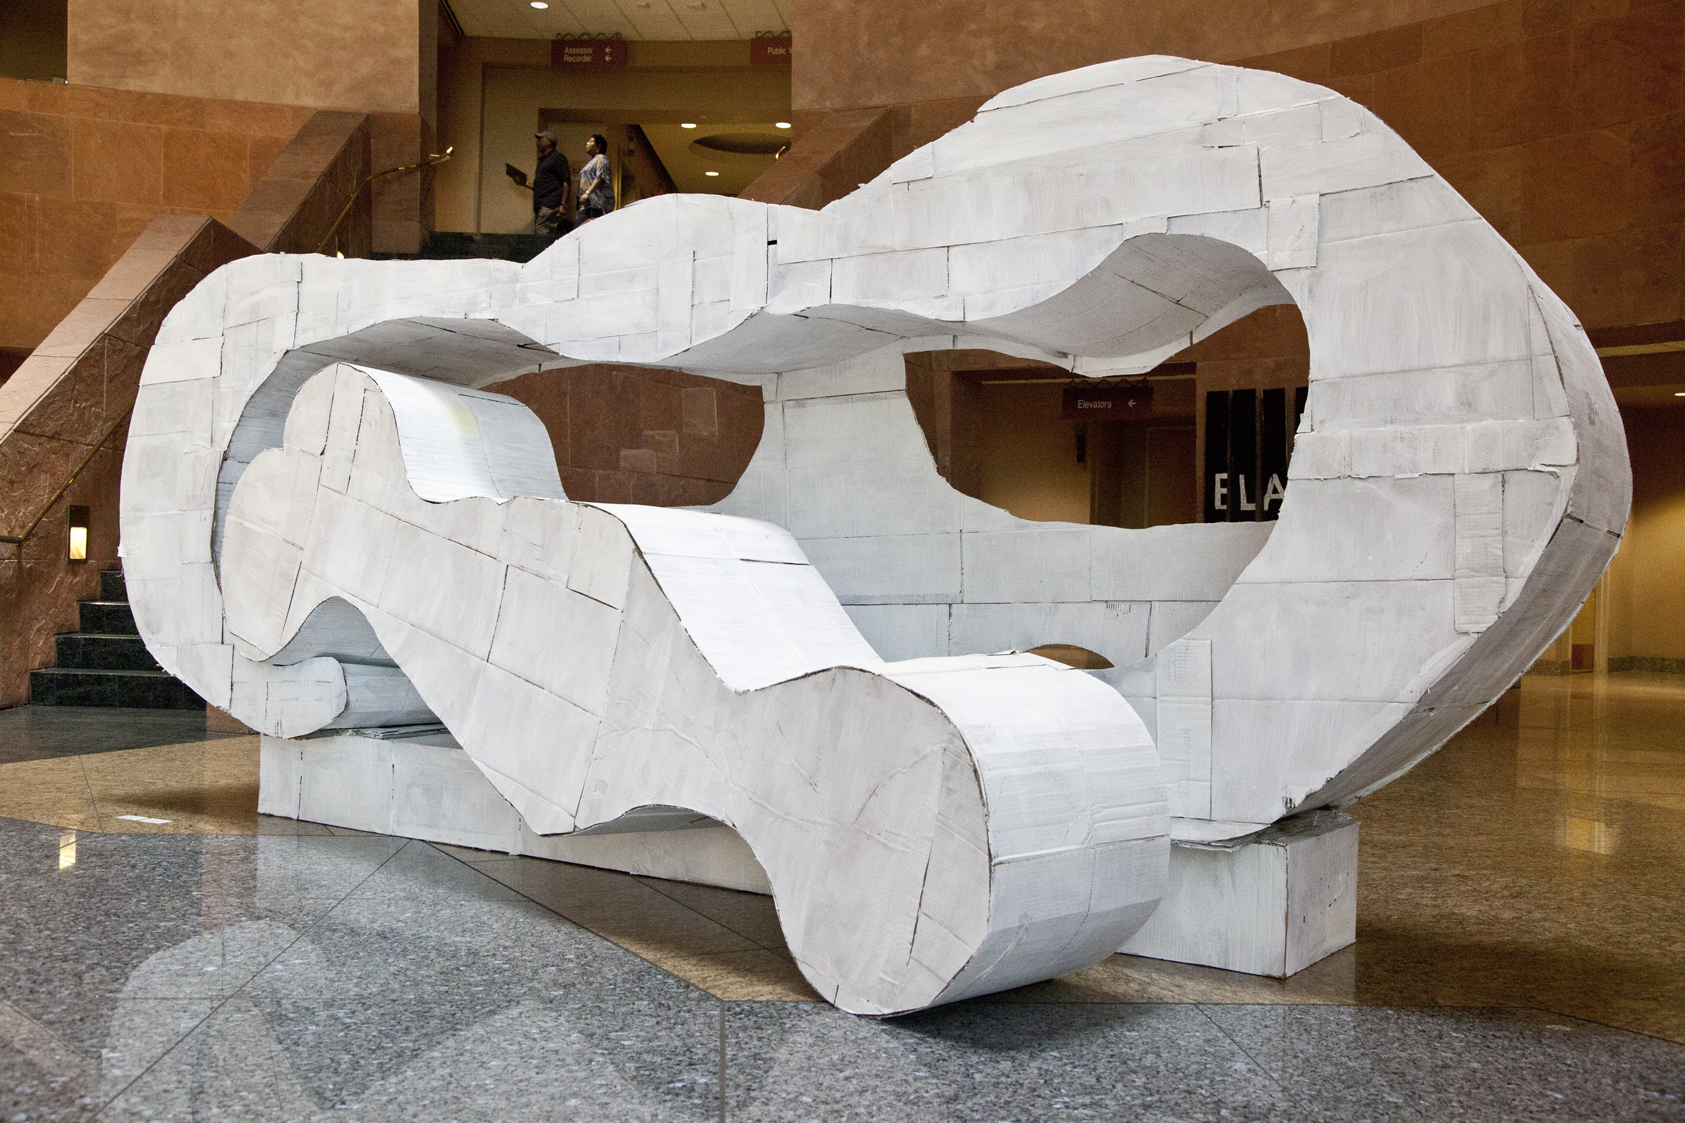 Reclining Connected Forms . 2011. Cardboard, glue and paint. 6'x12'x5'